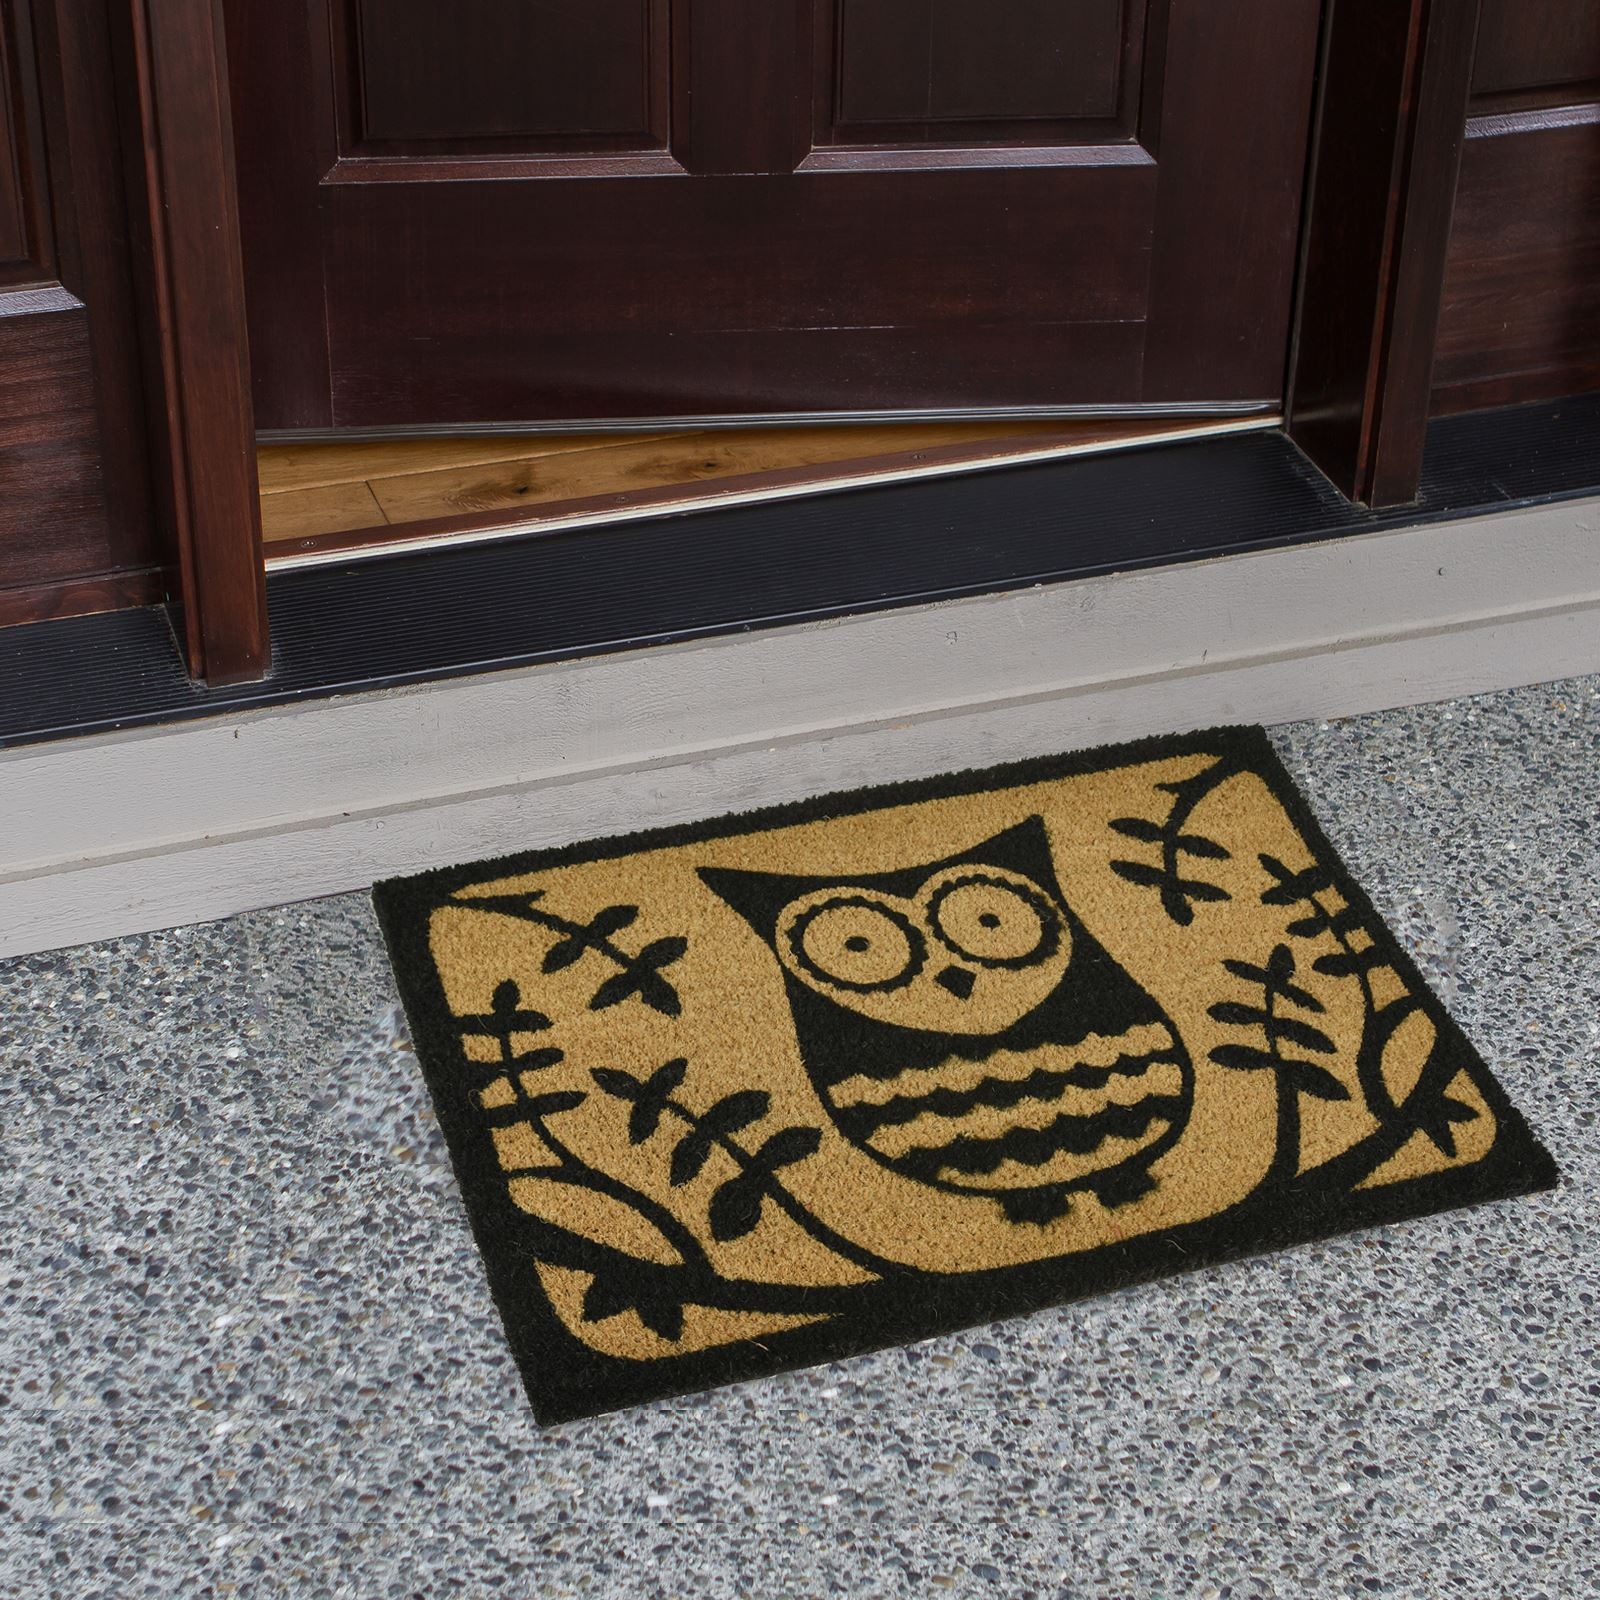 Large Door Mats Outdoor Door Entrance Welcome Mat Large Non Slip Indoor Outdoor